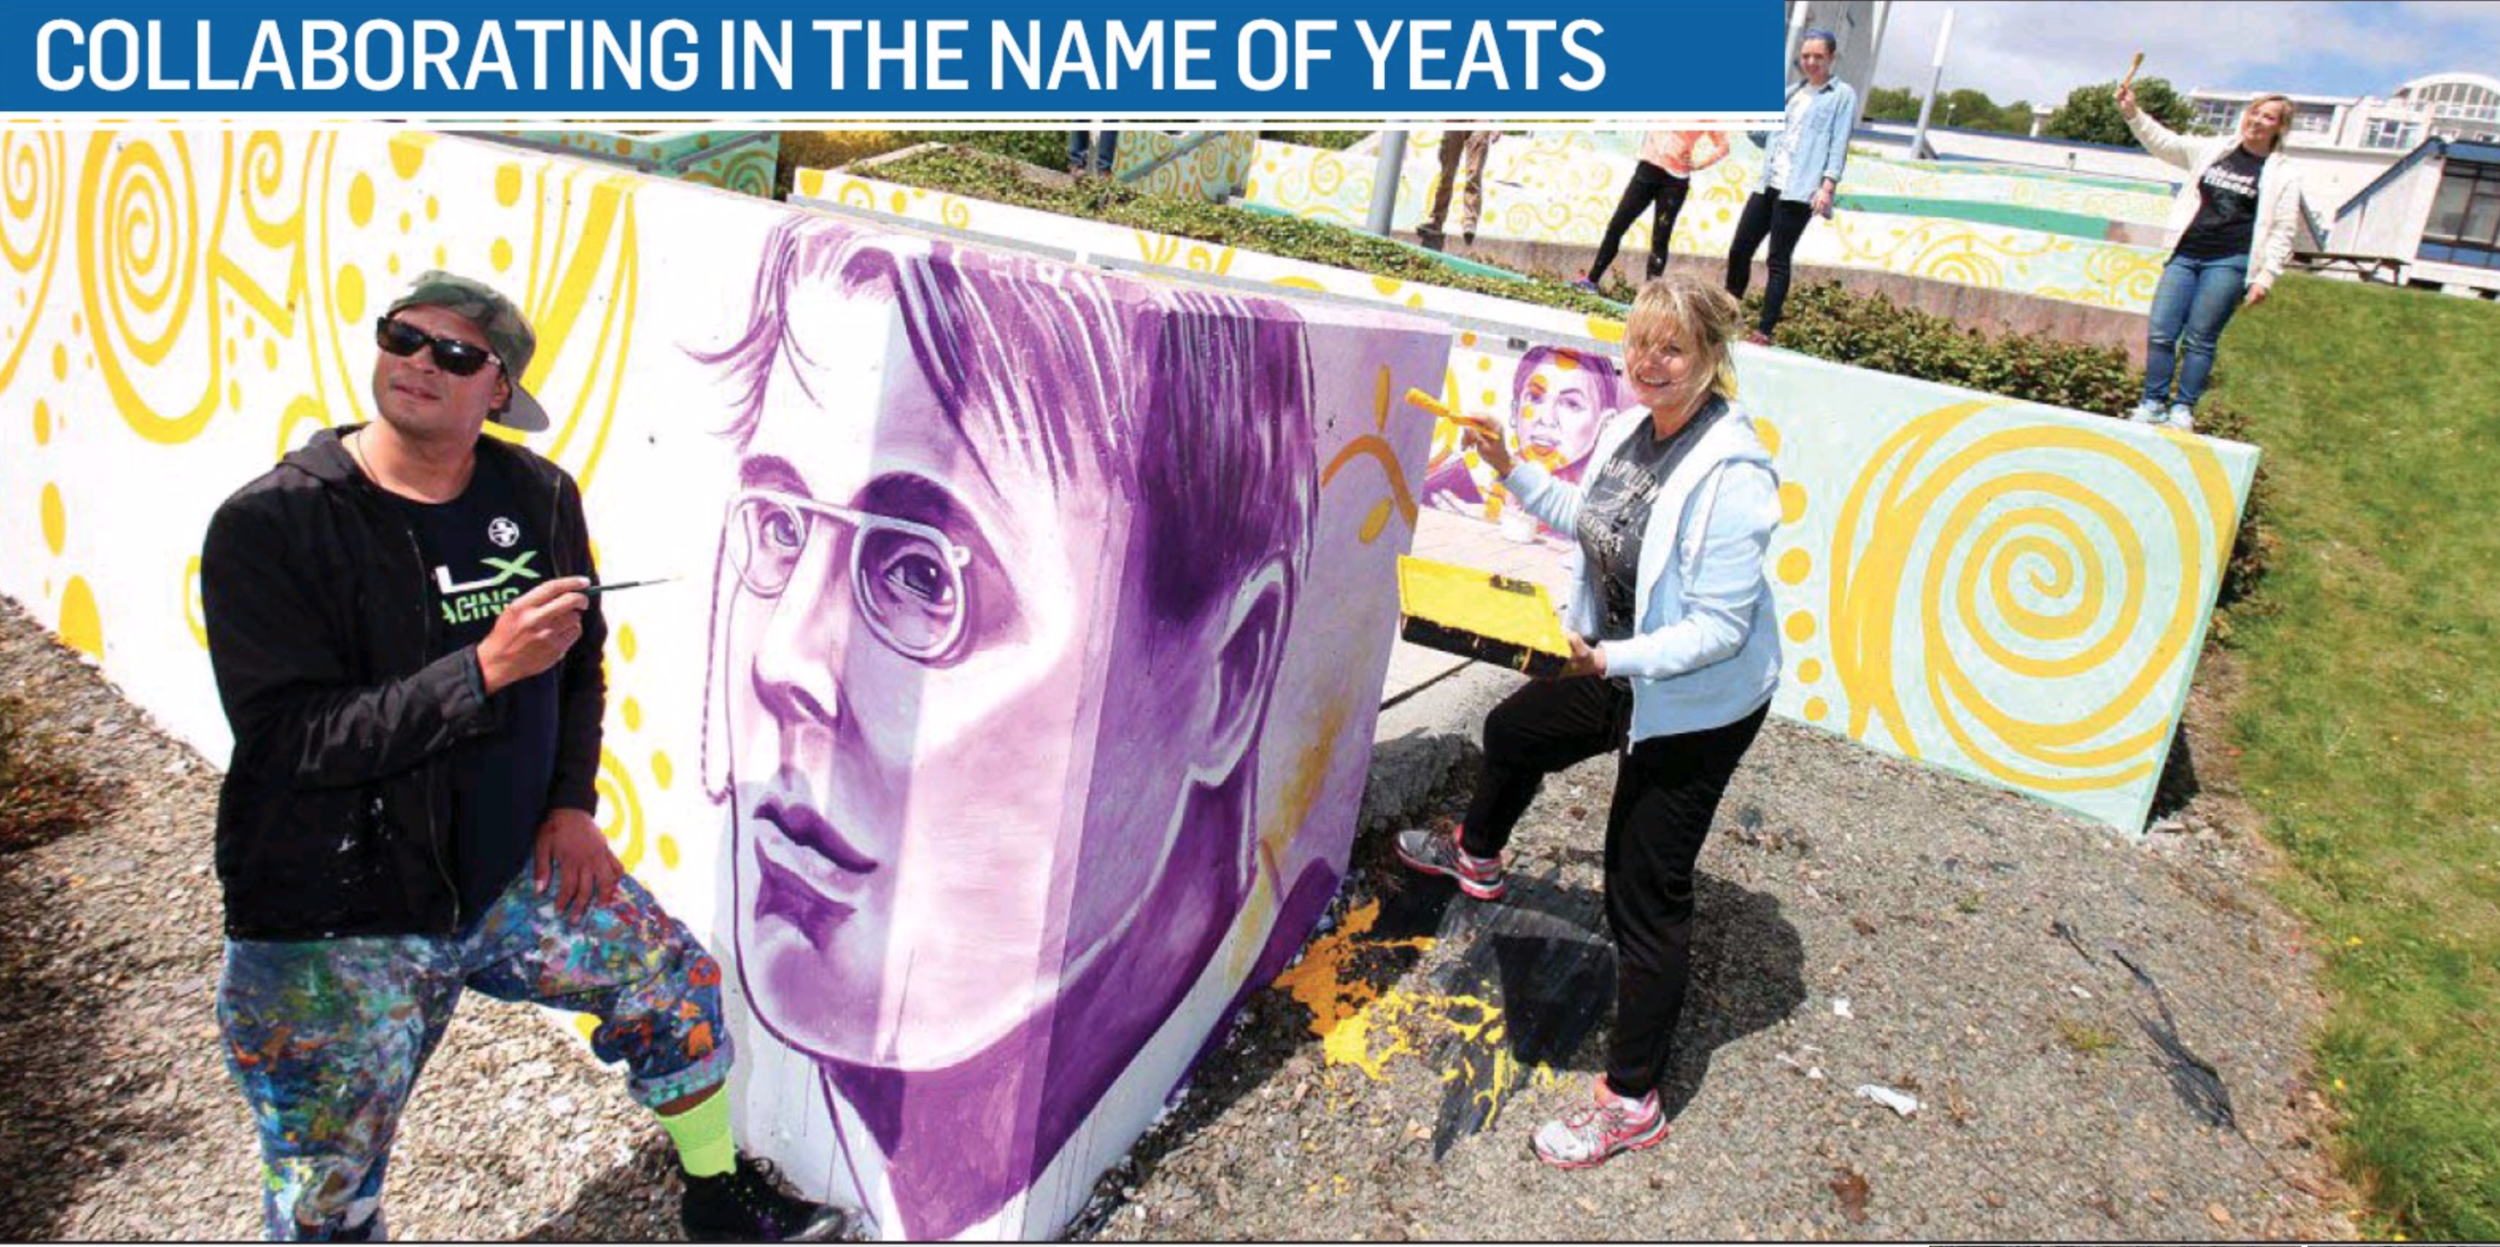 Executive Artist Kyle Holbrook, Dr. Susan O'Rourke and Magician Kevin Spencer paint a mural for the 100 year anniversary of Yeats death on Historic St. Angela's Colledge in Sligo with students and people with Muscular dystrophy as an example of inclusion.